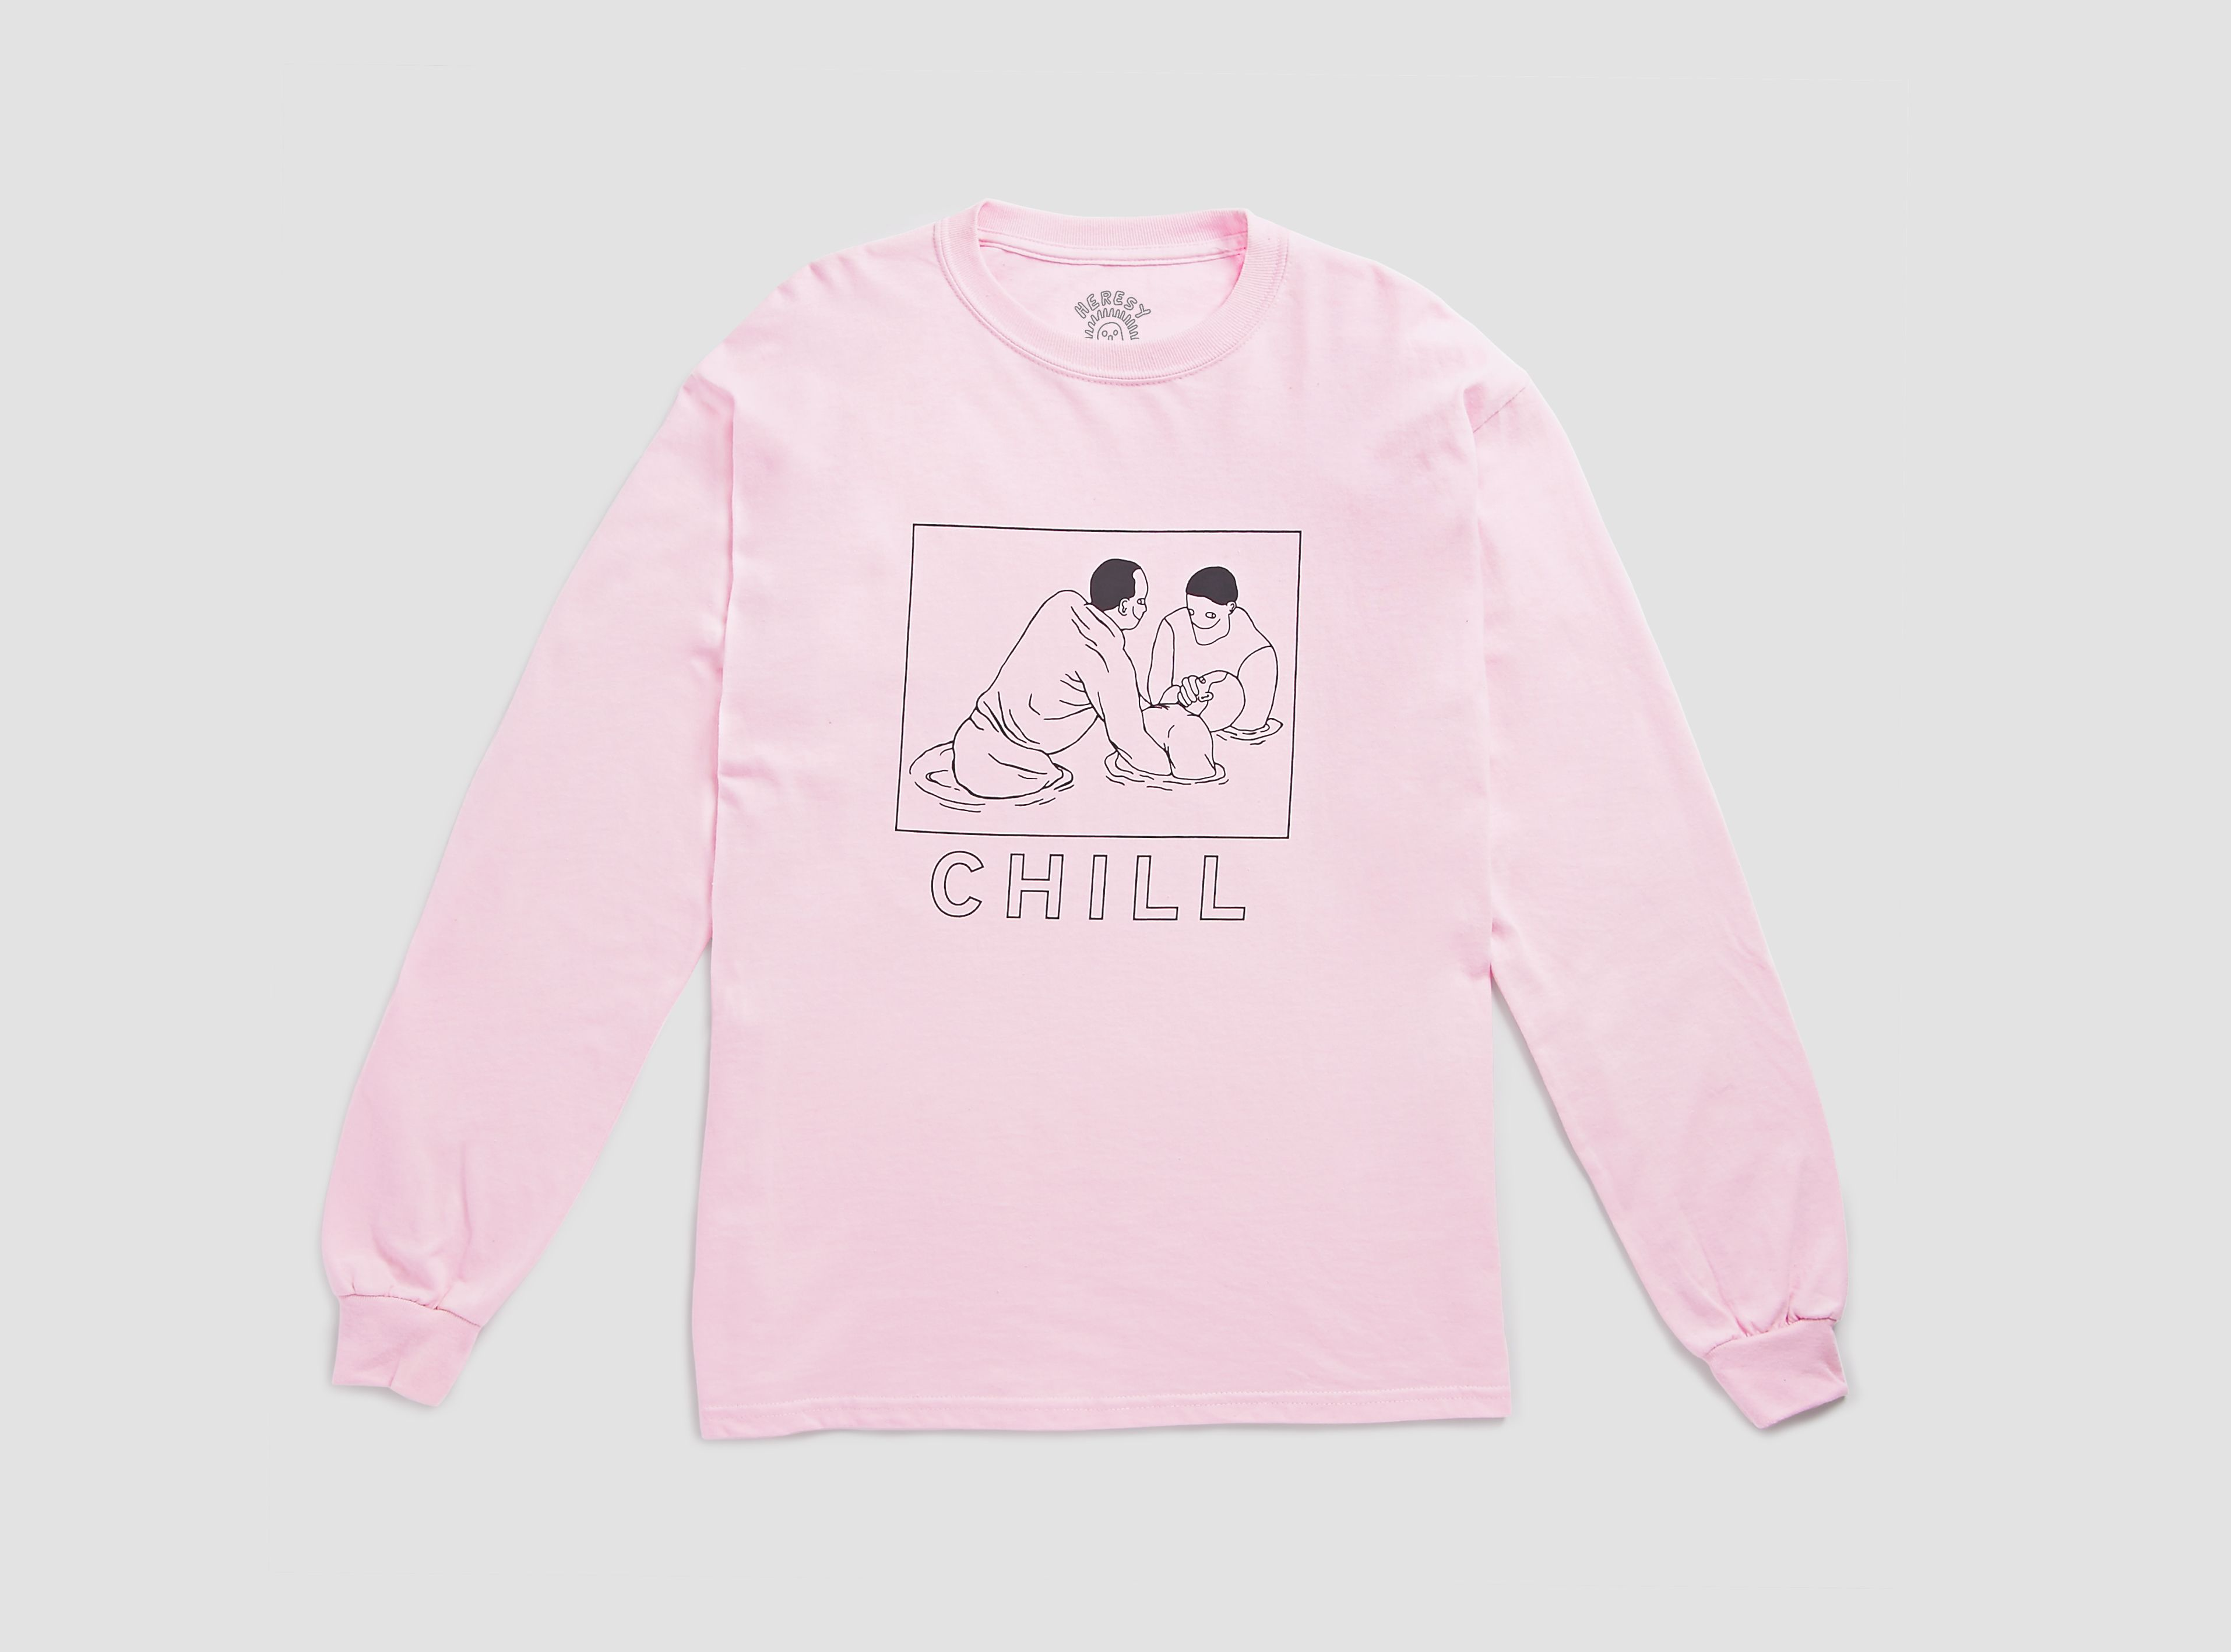 bd38c525b200 Chill – Heresy Graphic Shirts, Graphic Sweatshirt, Chill Outfits, Cute  Outfits, London